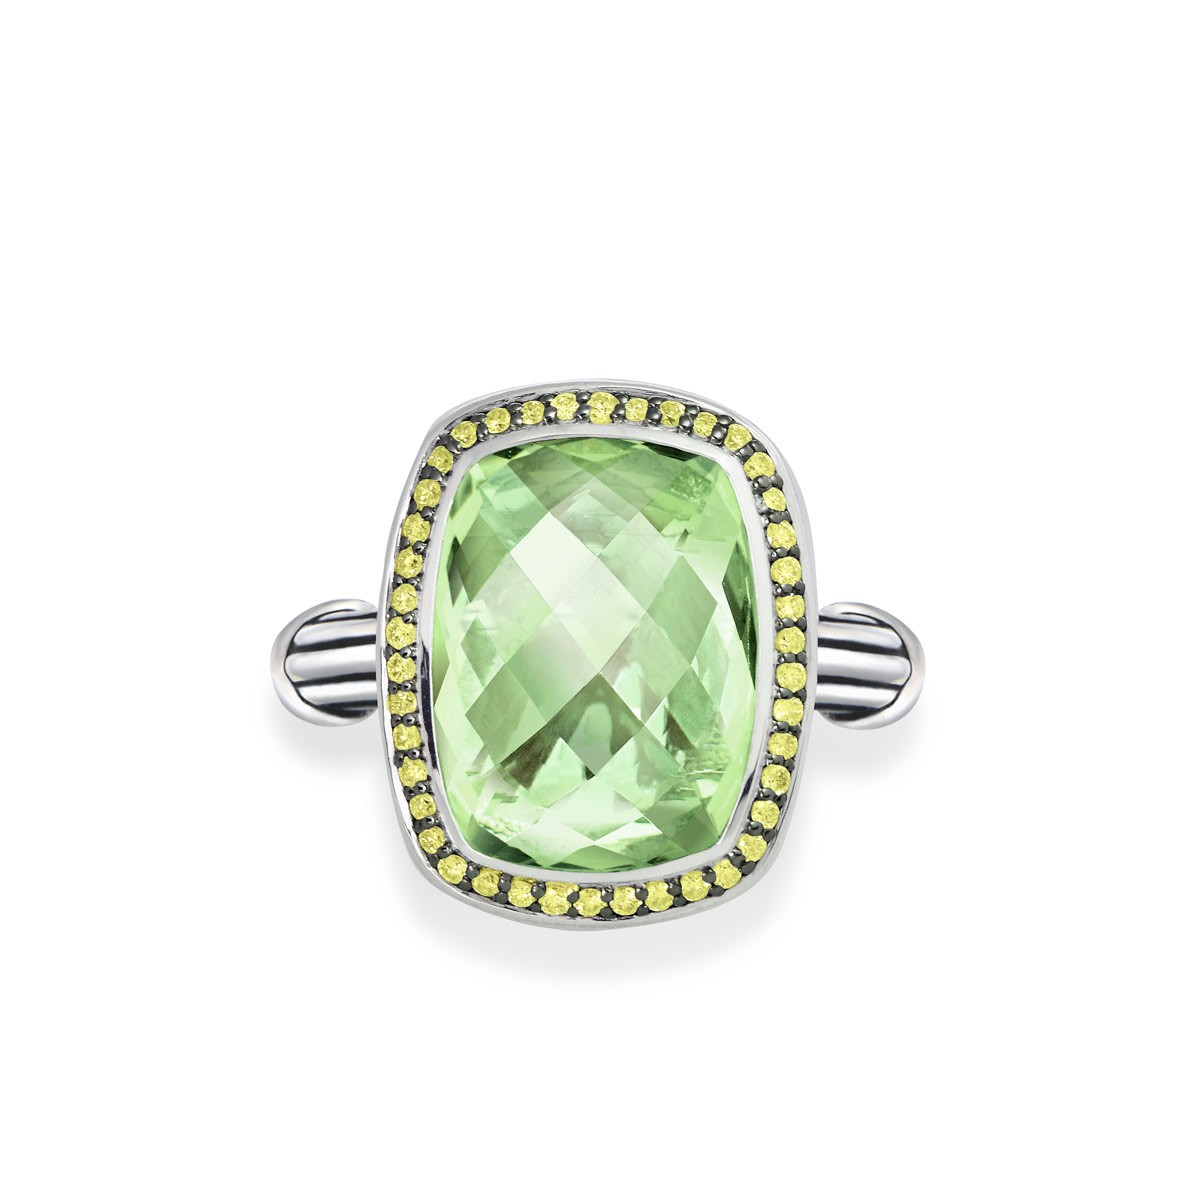 Fantasies Prasiolite Halo Ring in sterling silver with yellow sapphires